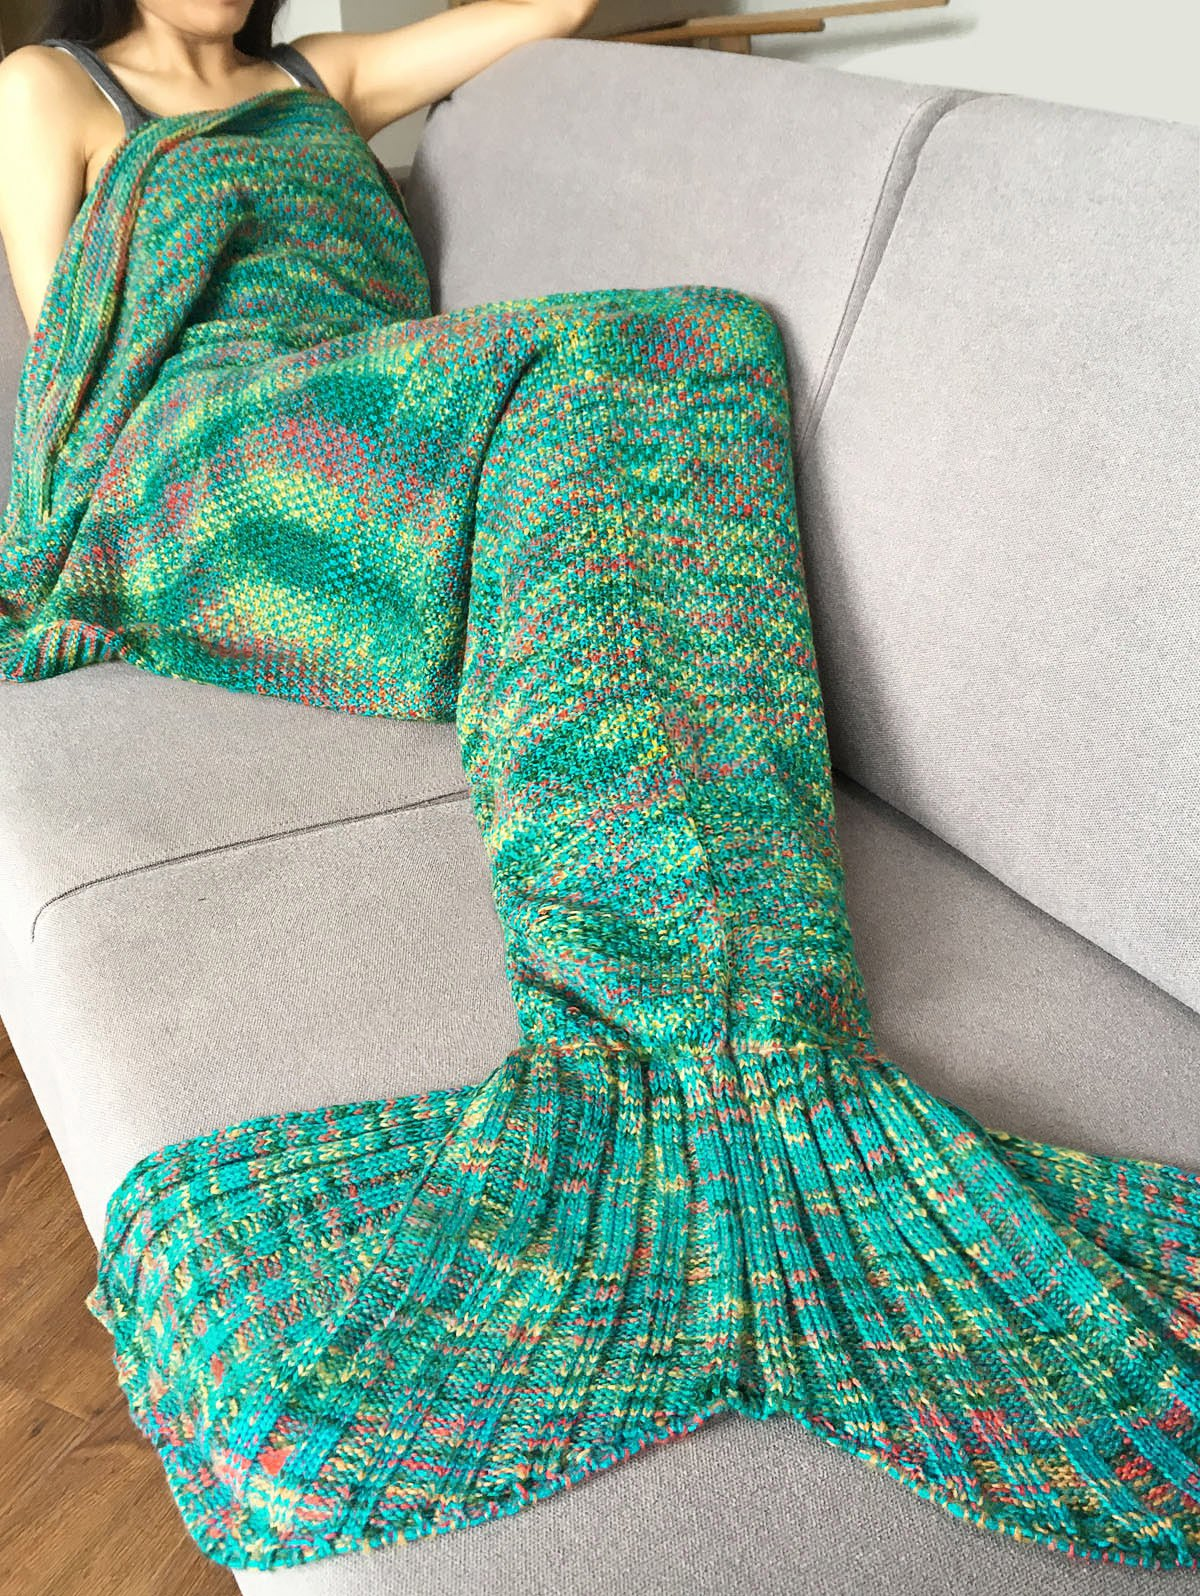 Super Soft Crochet Knitted Fashion Mermaid Tail Shape Blanket For Adult 195x95cm yarn knitted mermaid tail blanket super soft sleeping bed handmade crochet portable blanket for autumn winter